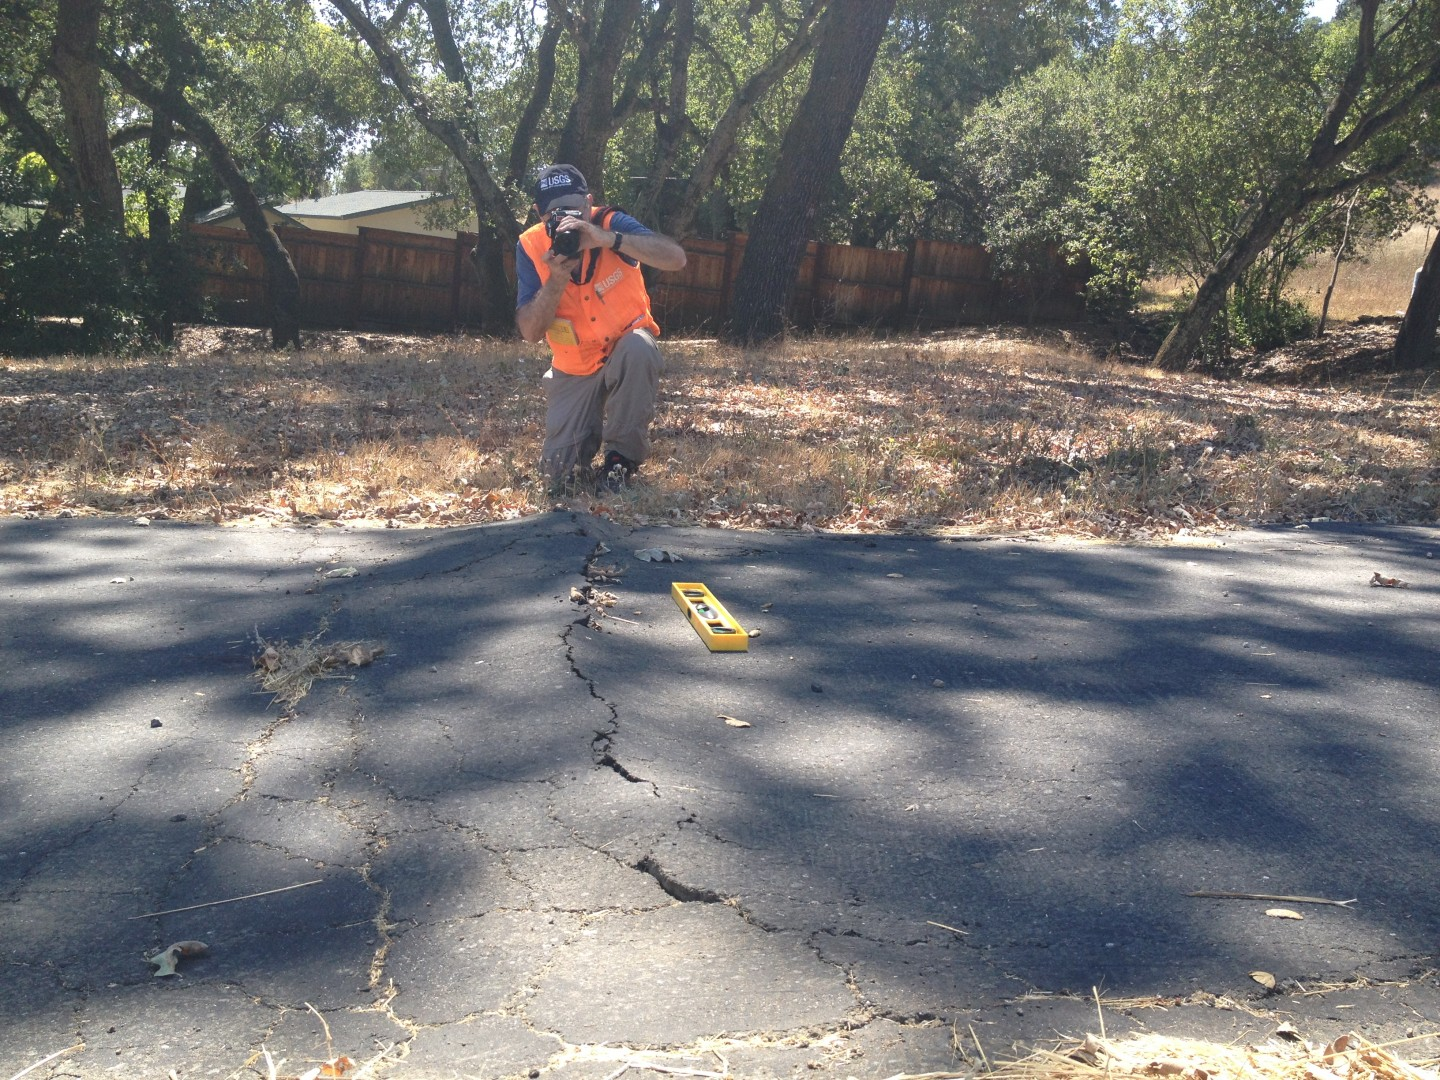 USGS Geologist David Schwartz identifies surface cracks in the west Napa Valley that show lateral slip, a clue to the location of faults that caused the magnitude-6 South Napa Earthquake on August 24, 2014.